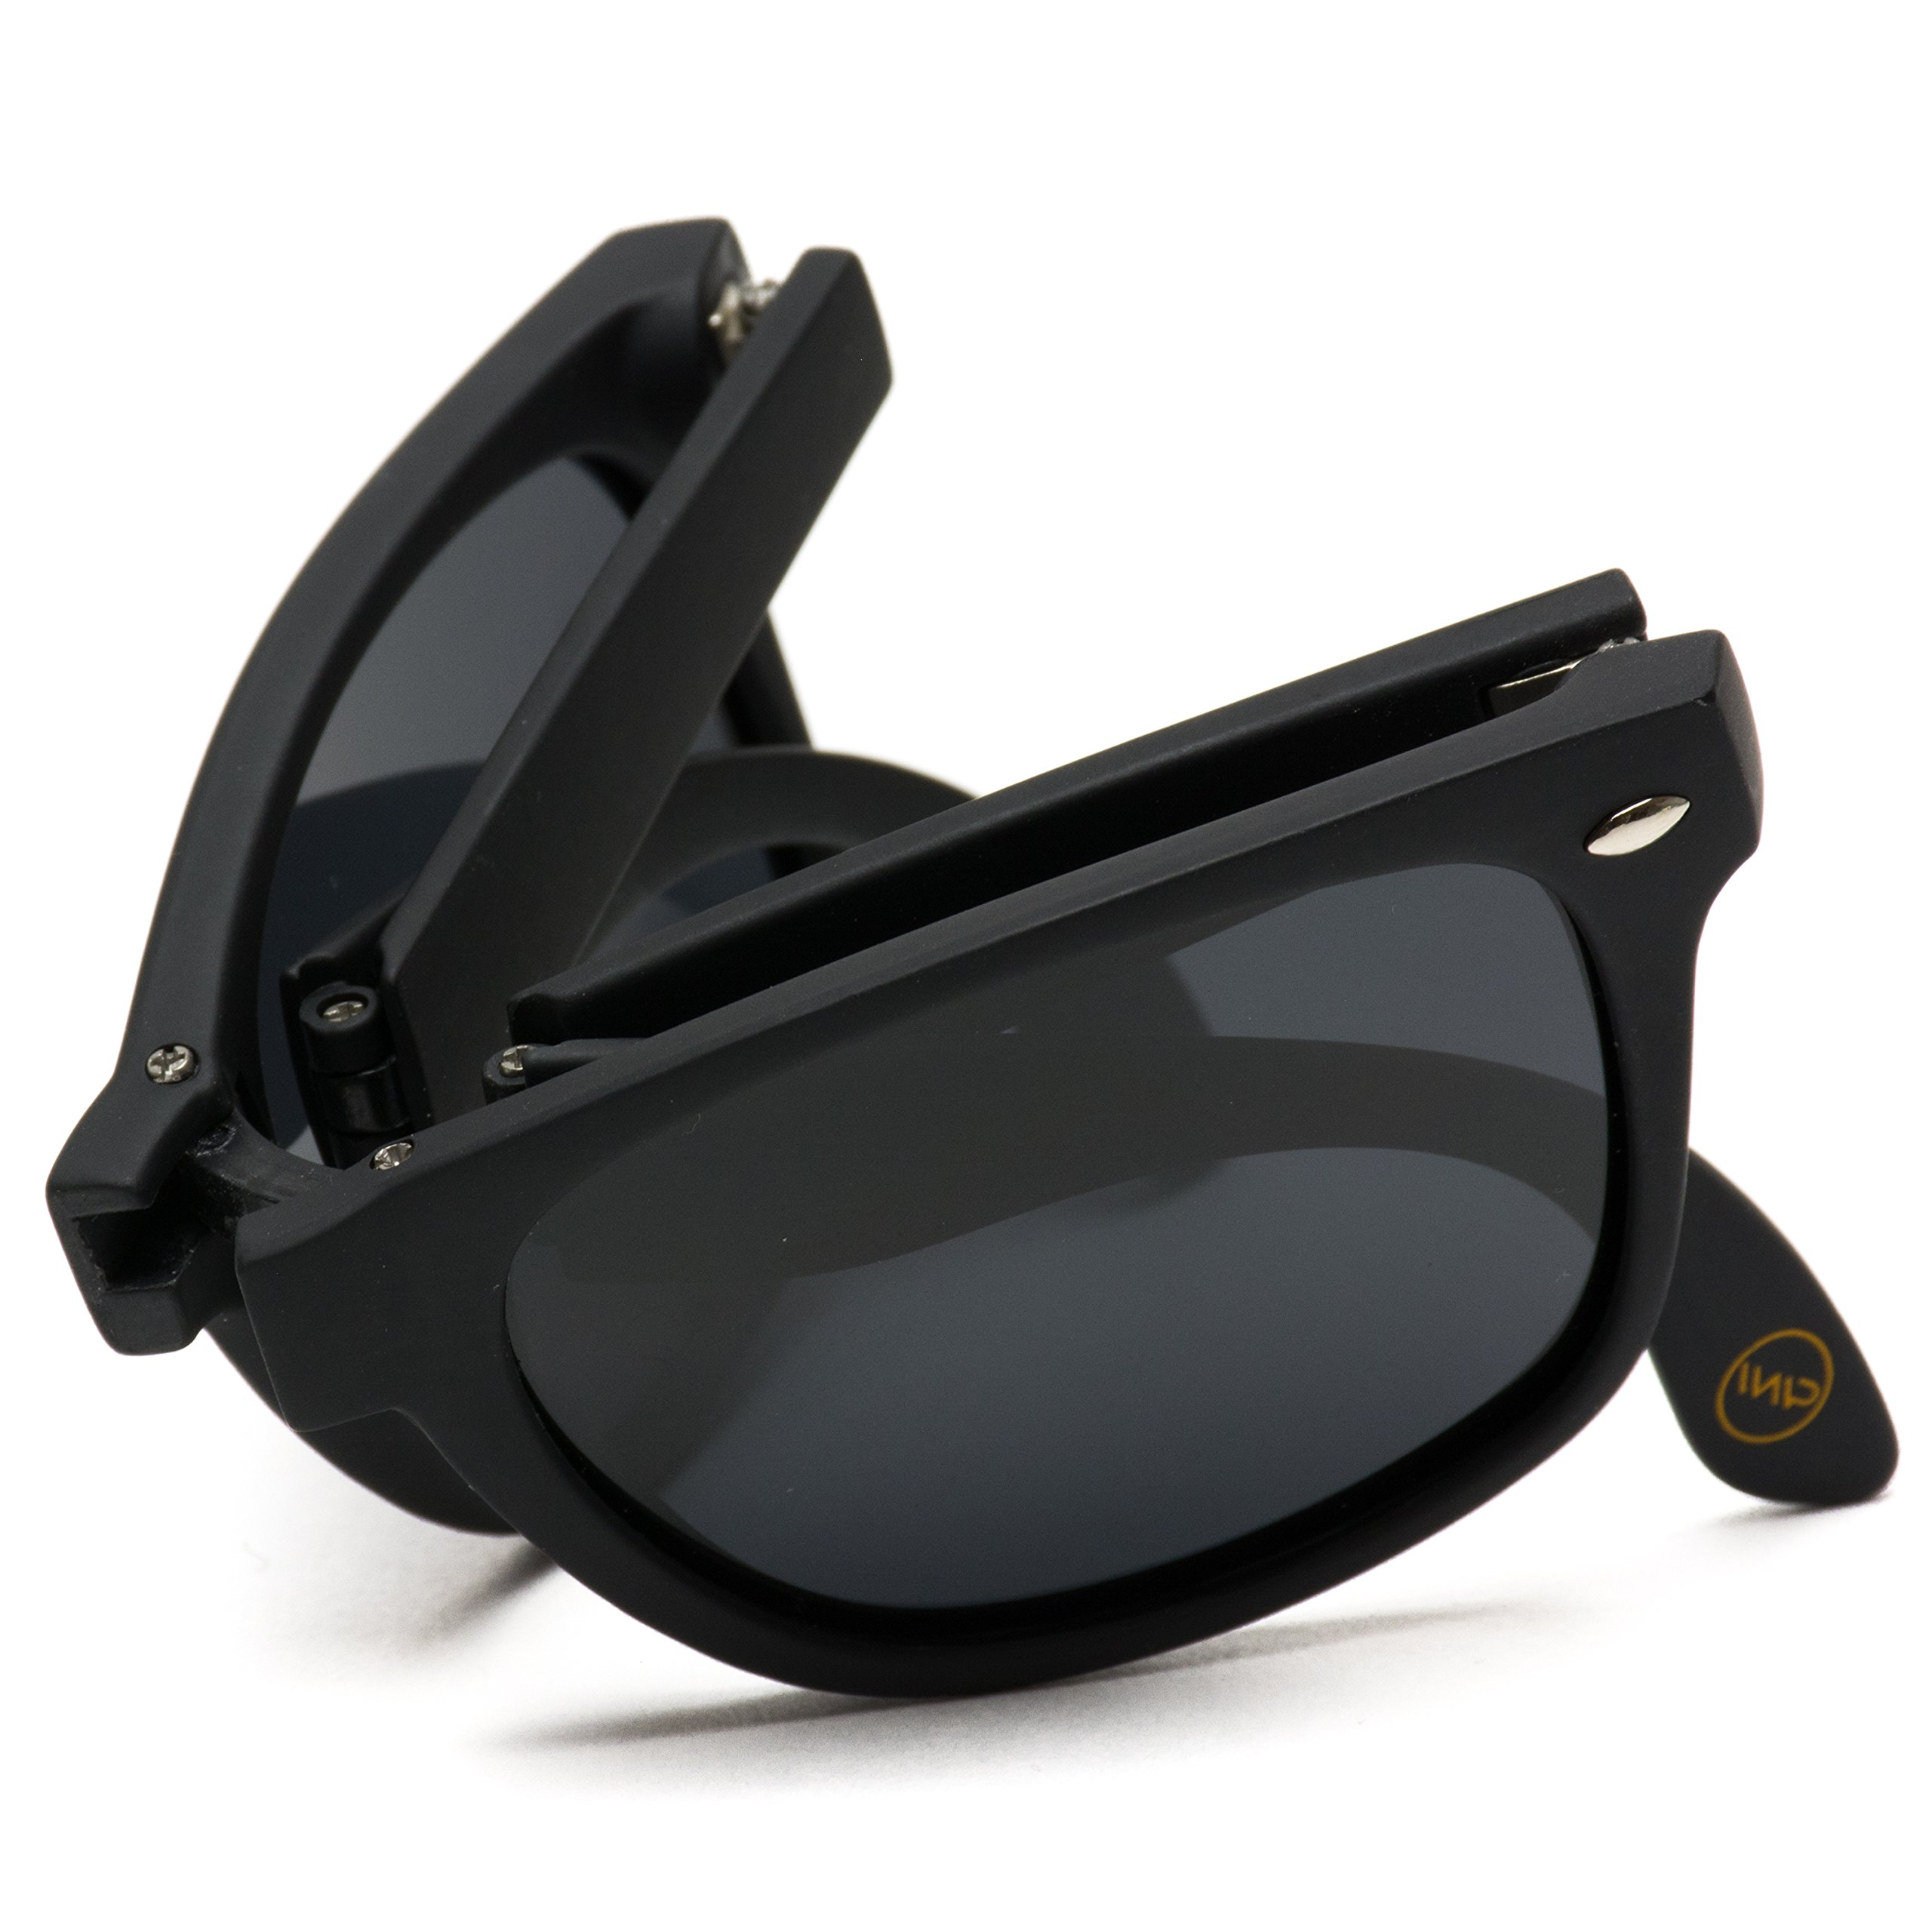 Modern Black Wayfarer Foldable Sunglasses with Case (Black Frame/Black Lens) by WearMe Pro